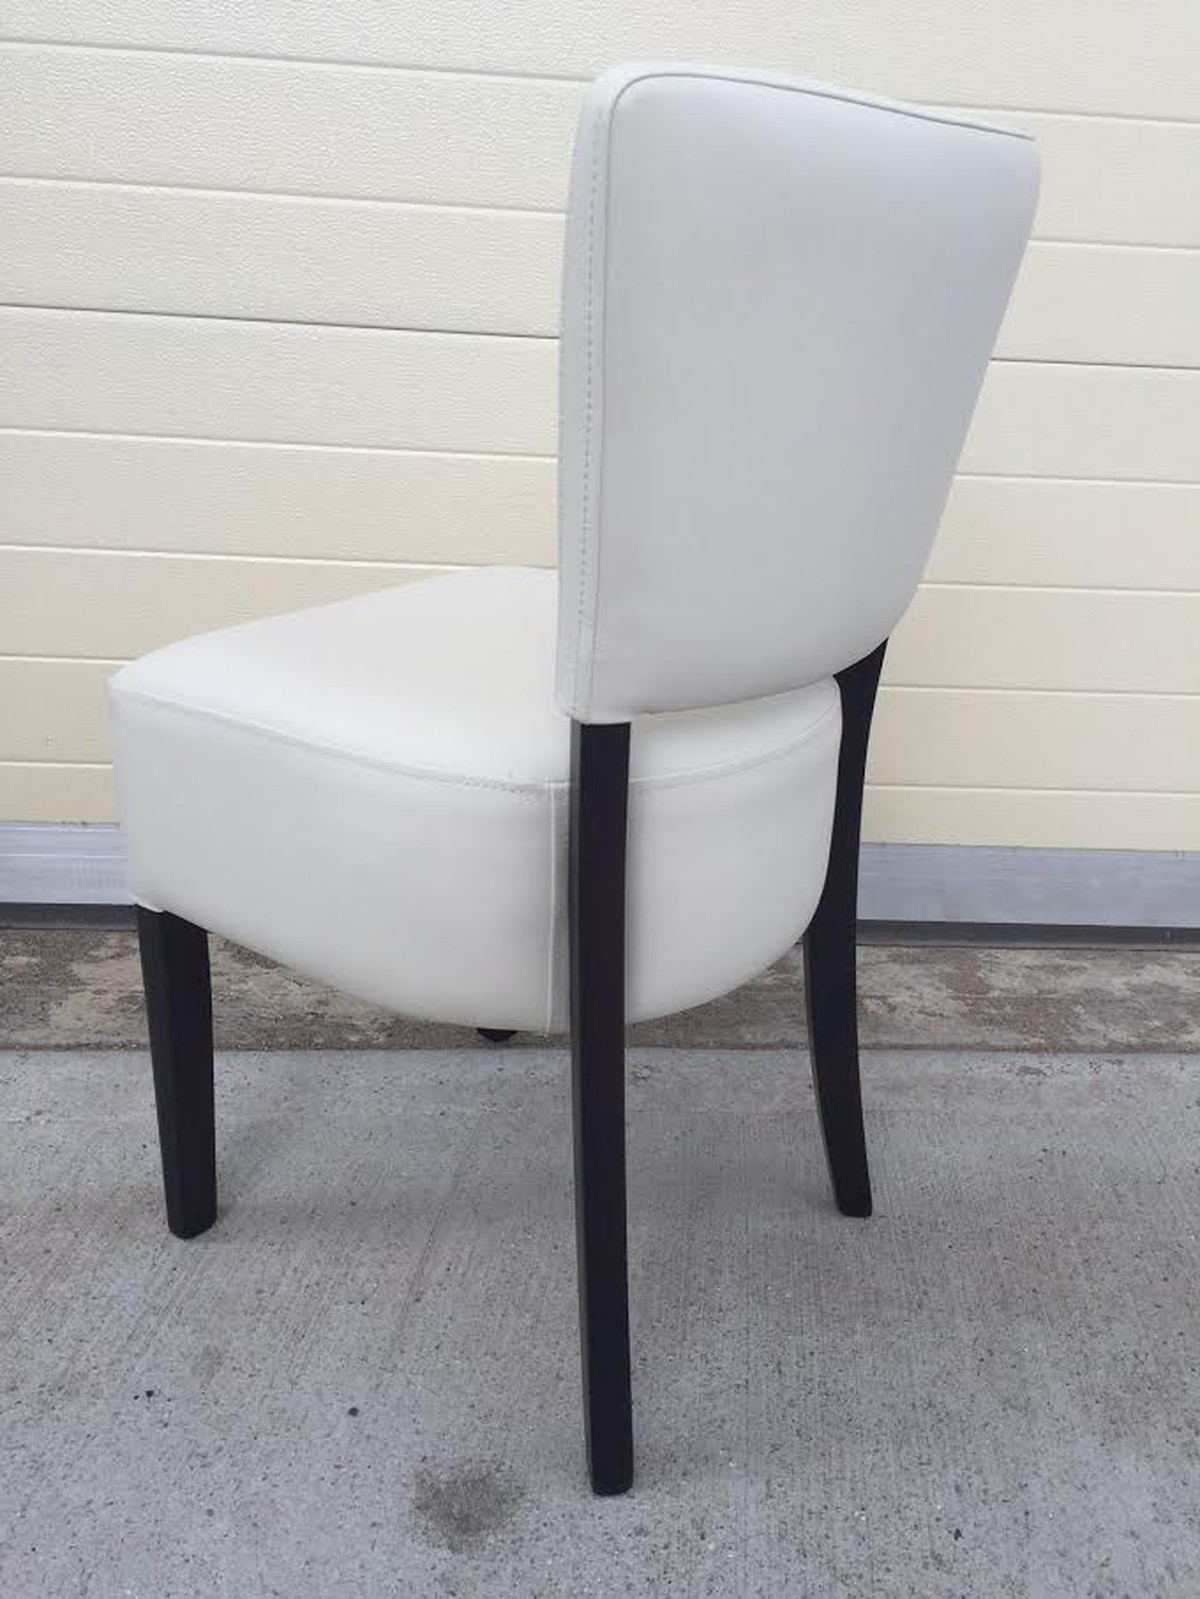 Super 124X Cancelled Order Restaurant Chairs Upholstered In Capella Faux Leather Brand New Hertfordshire Evergreenethics Interior Chair Design Evergreenethicsorg